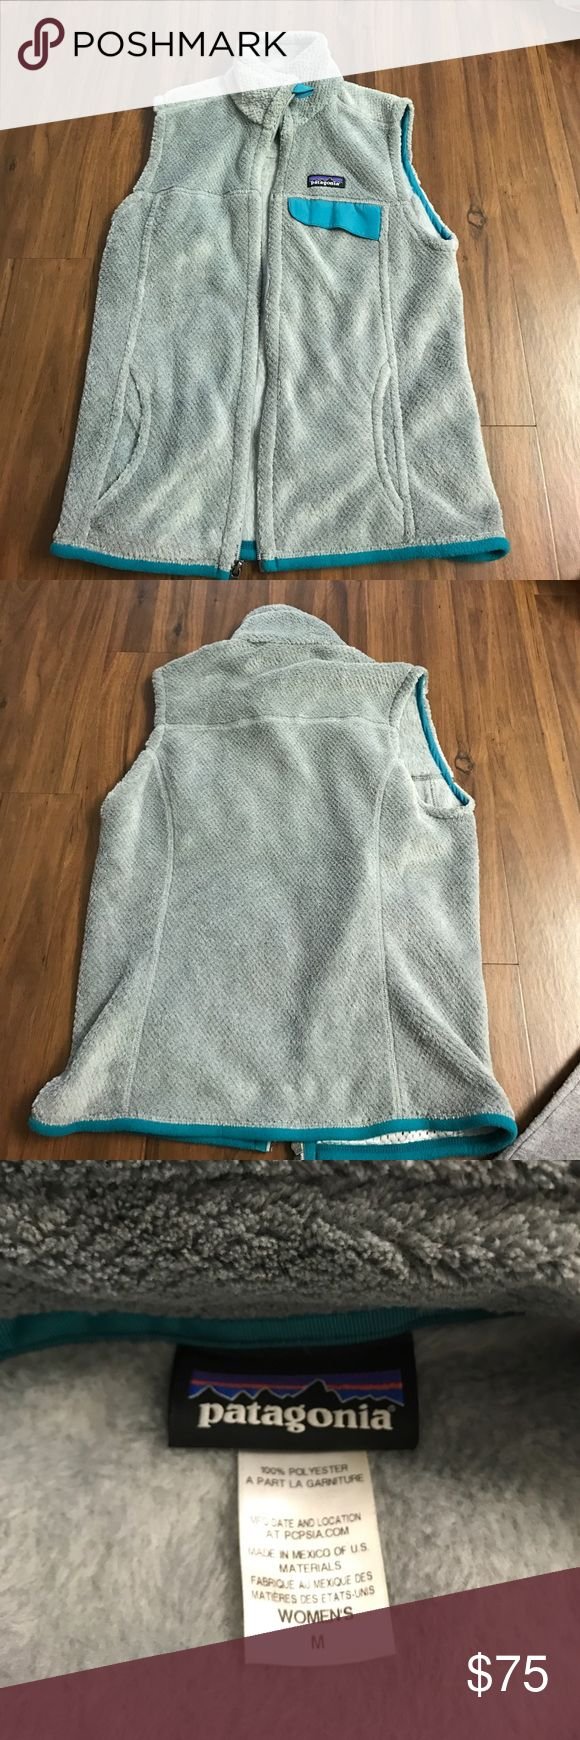 Patagonia Vest SALE⚡️⚡️⚡️ NEW WITHOUT TAGS!! Comfortable and warm for a addition to your fall/winter outfit! It's a medium but fits more like a small! Make me an offer Patagonia Jackets & Coats Vests